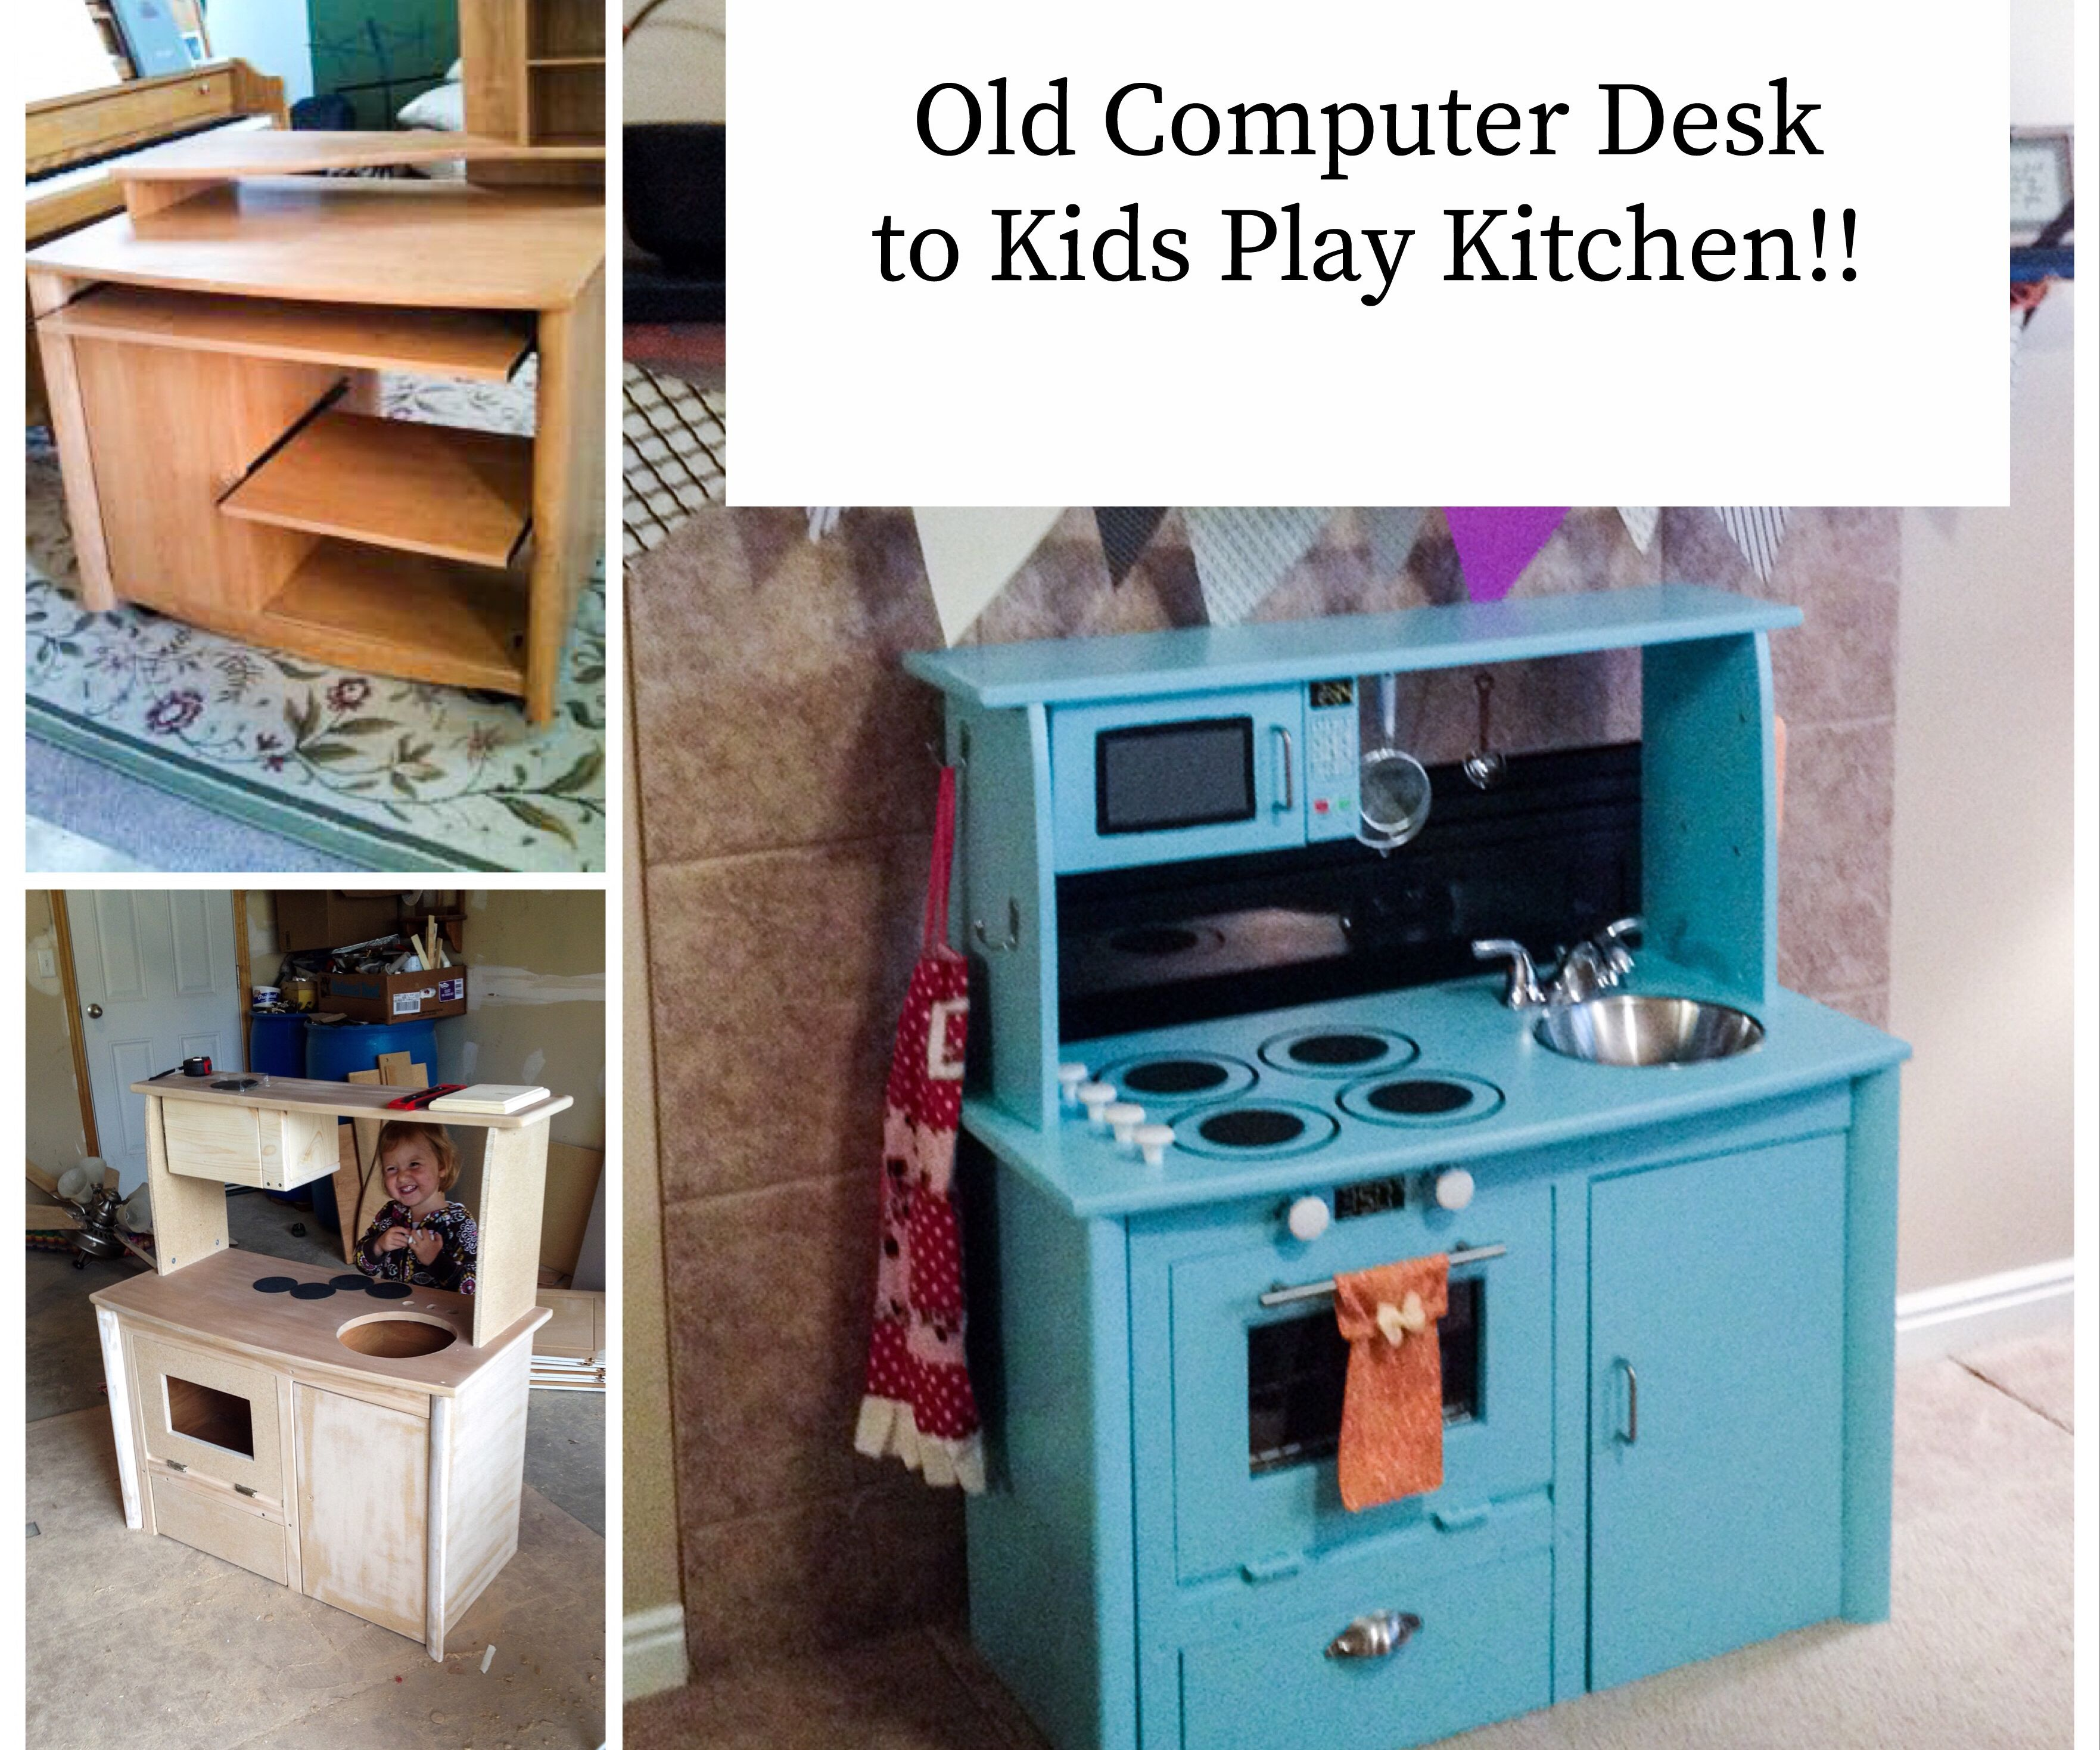 Kid Play Kitchen From an Old Computer Desk: 12 Steps (with ...